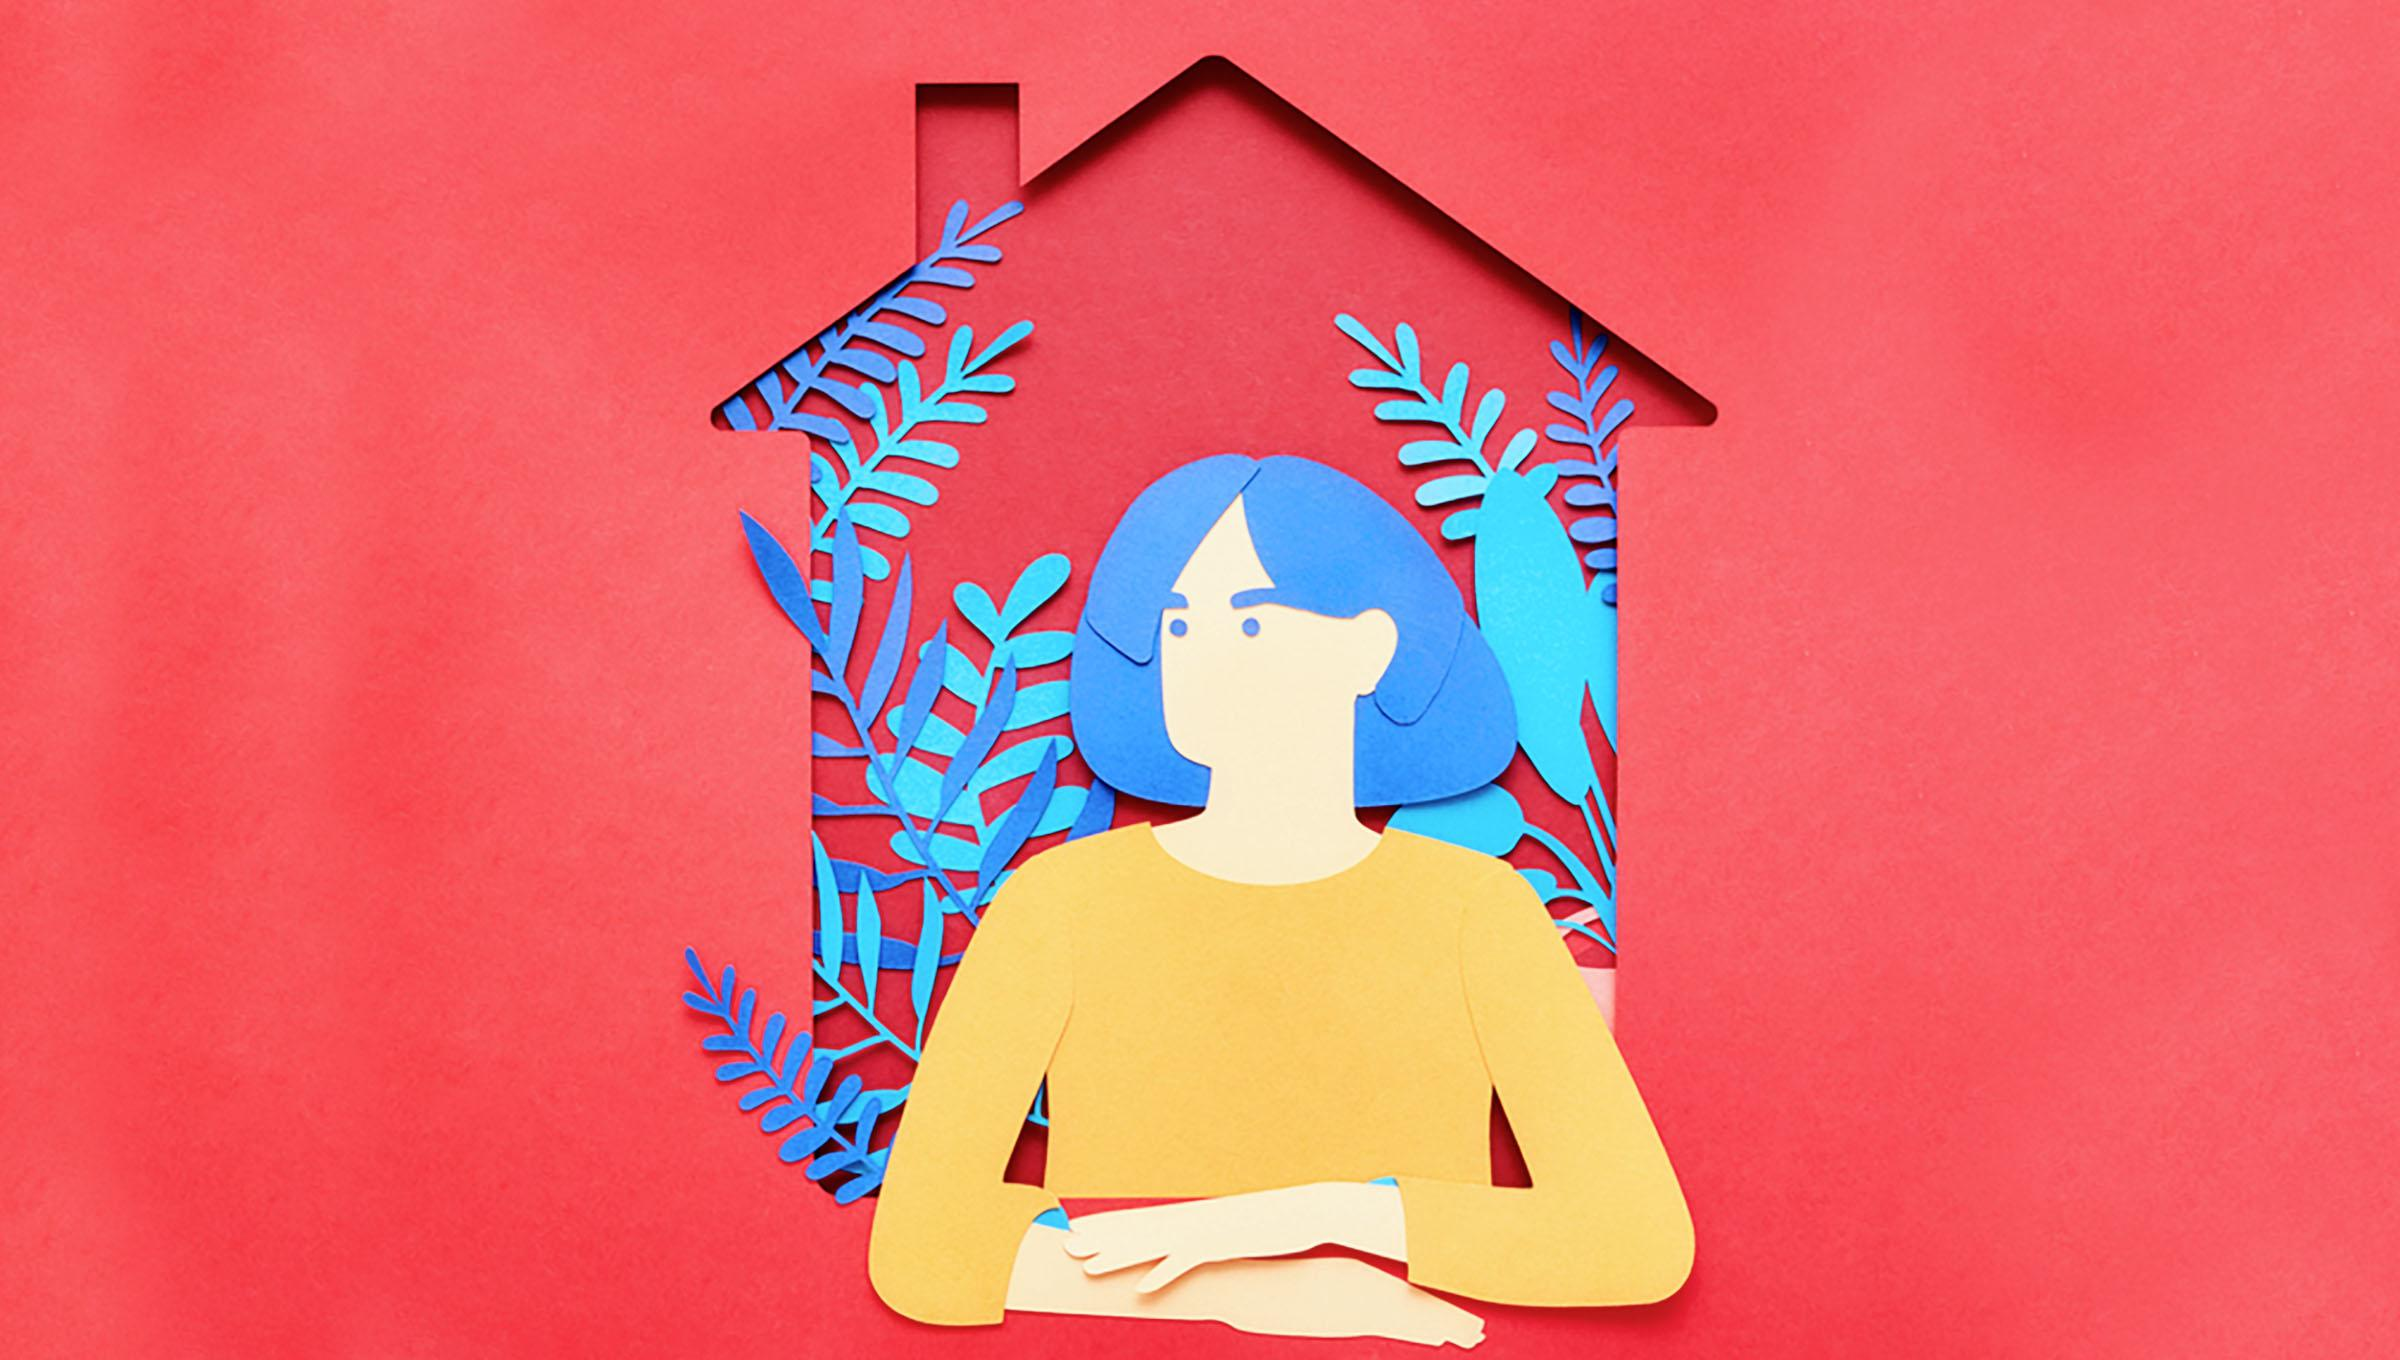 paper cut out of plants and woman staying at home during quarantine orders